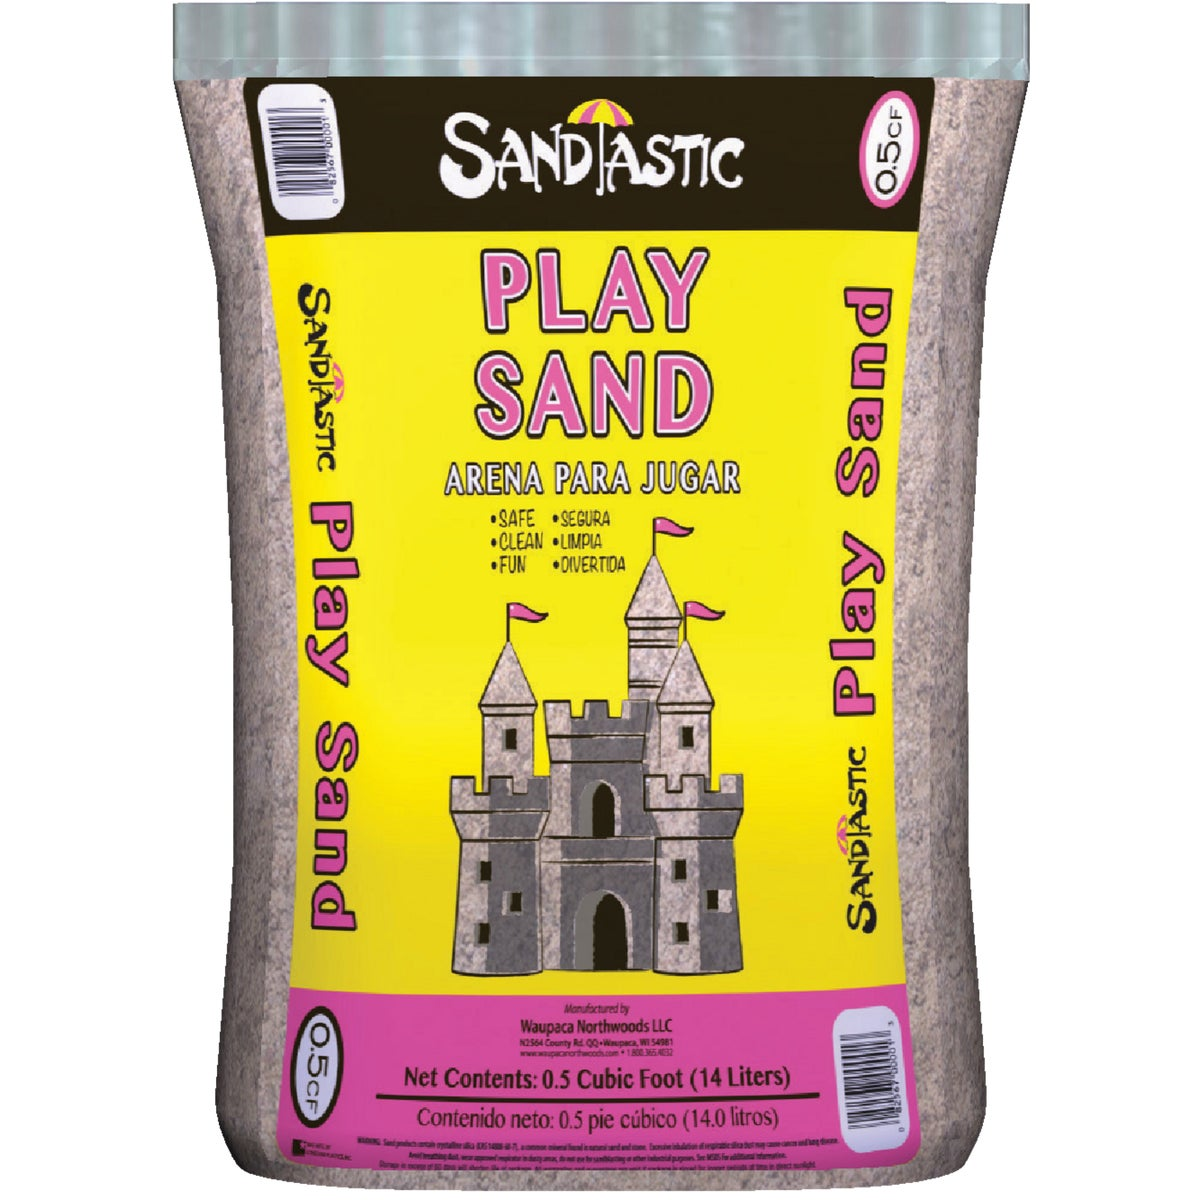 .5 CU FT PLAY SAND